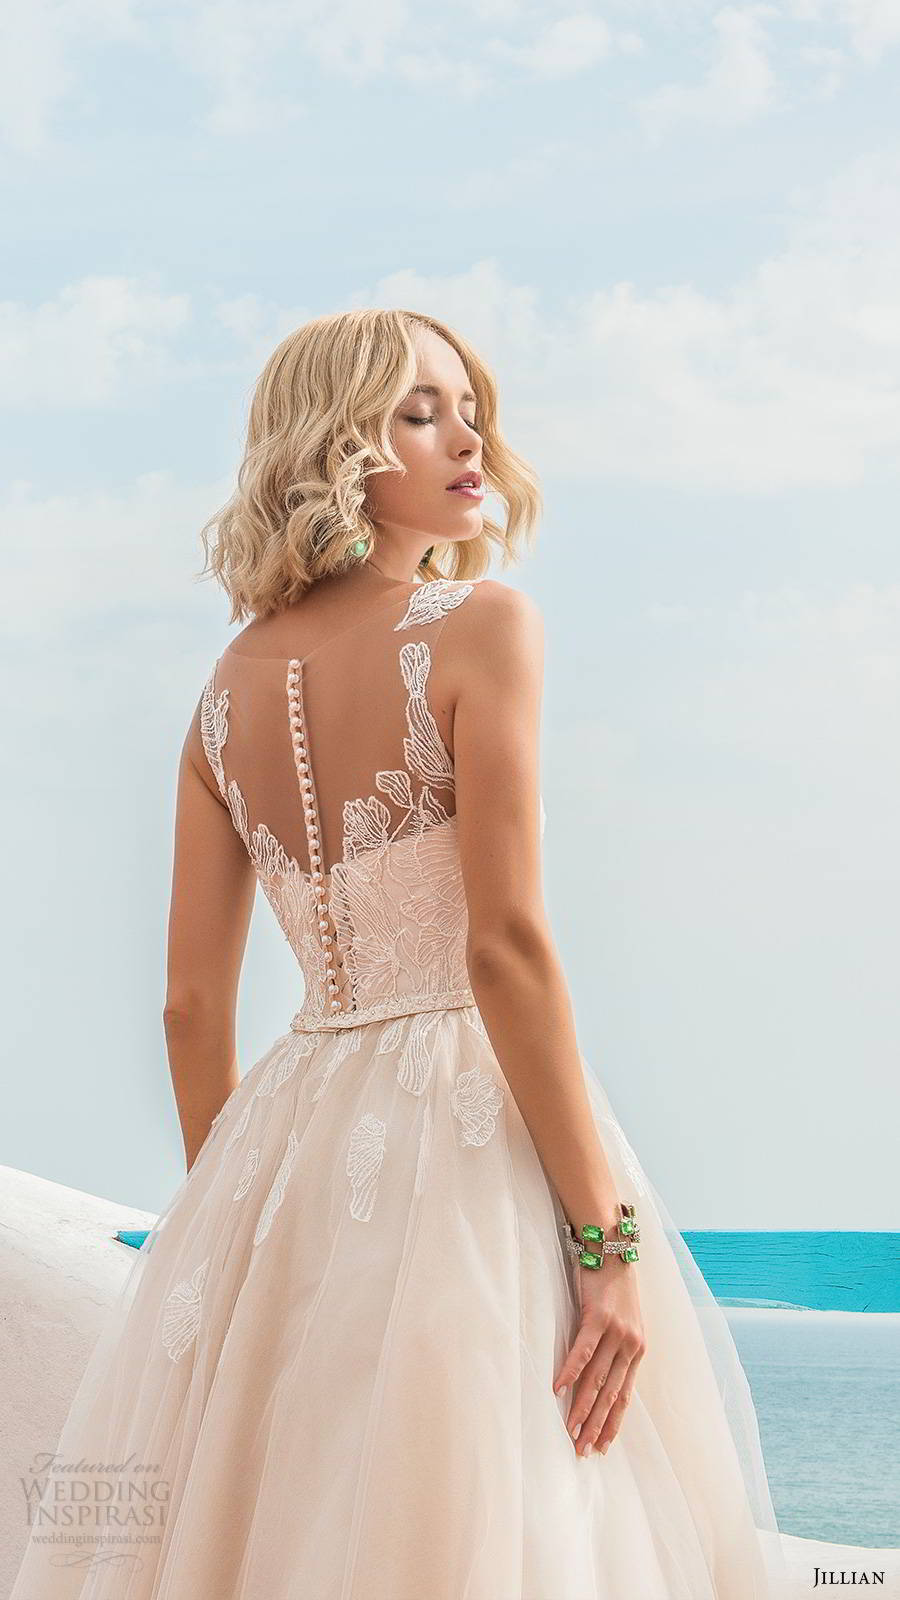 jillian sposa 2020 bridal sleeveless illusion straps sweetheart neckline embellished bodice romantic a line ball gown wedding dress chapel train blush color (5) zbv